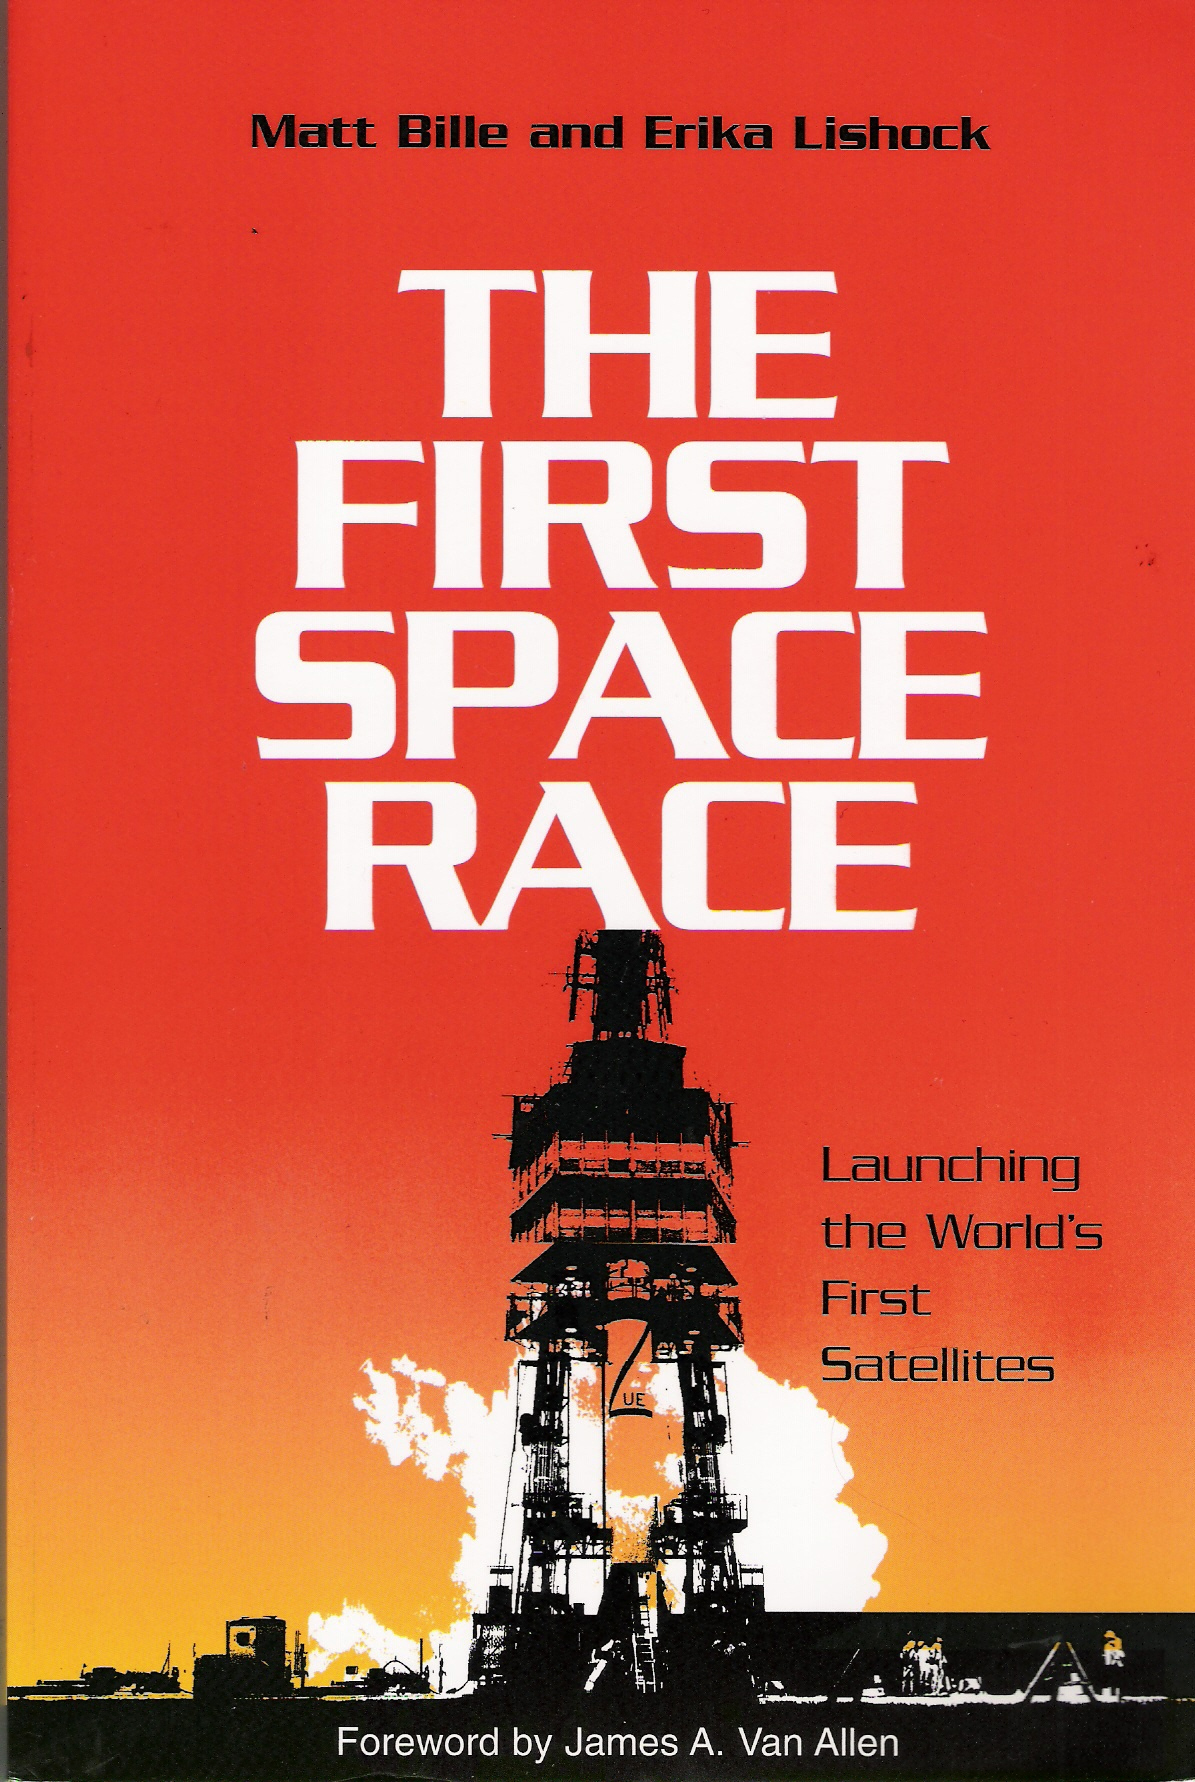 The Space Age Turns 50